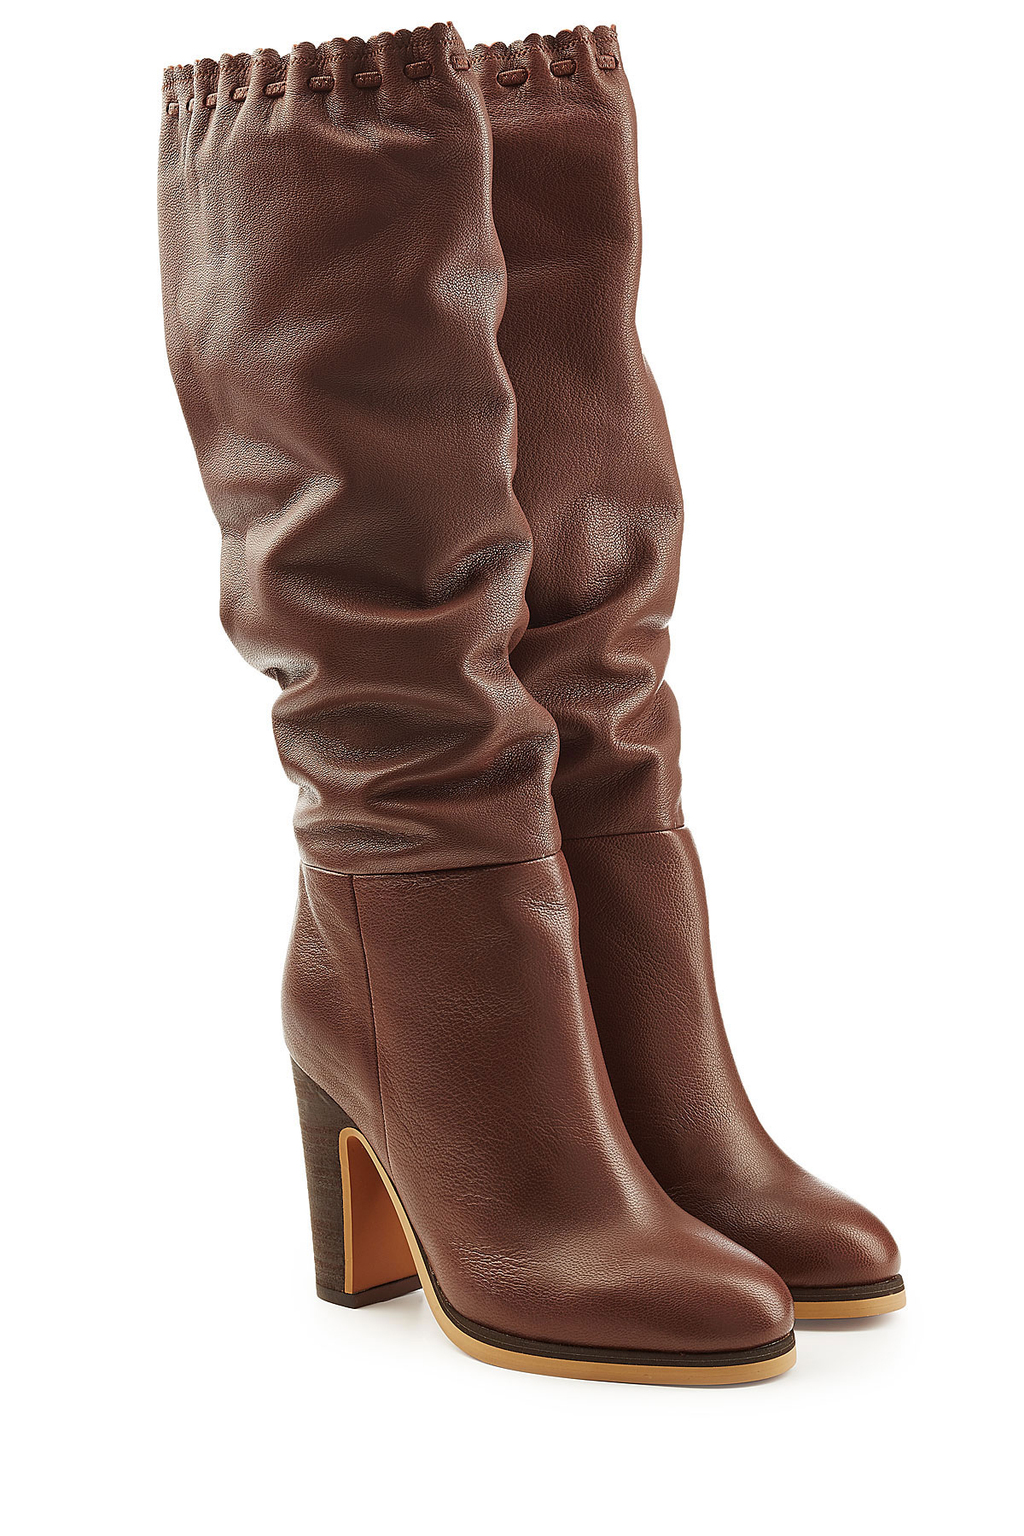 Leather Boots Black - predominant colour: tan; occasions: casual, creative work; material: leather; heel height: high; heel: block; toe: round toe; boot length: knee; style: standard; finish: plain; pattern: plain; season: a/w 2016